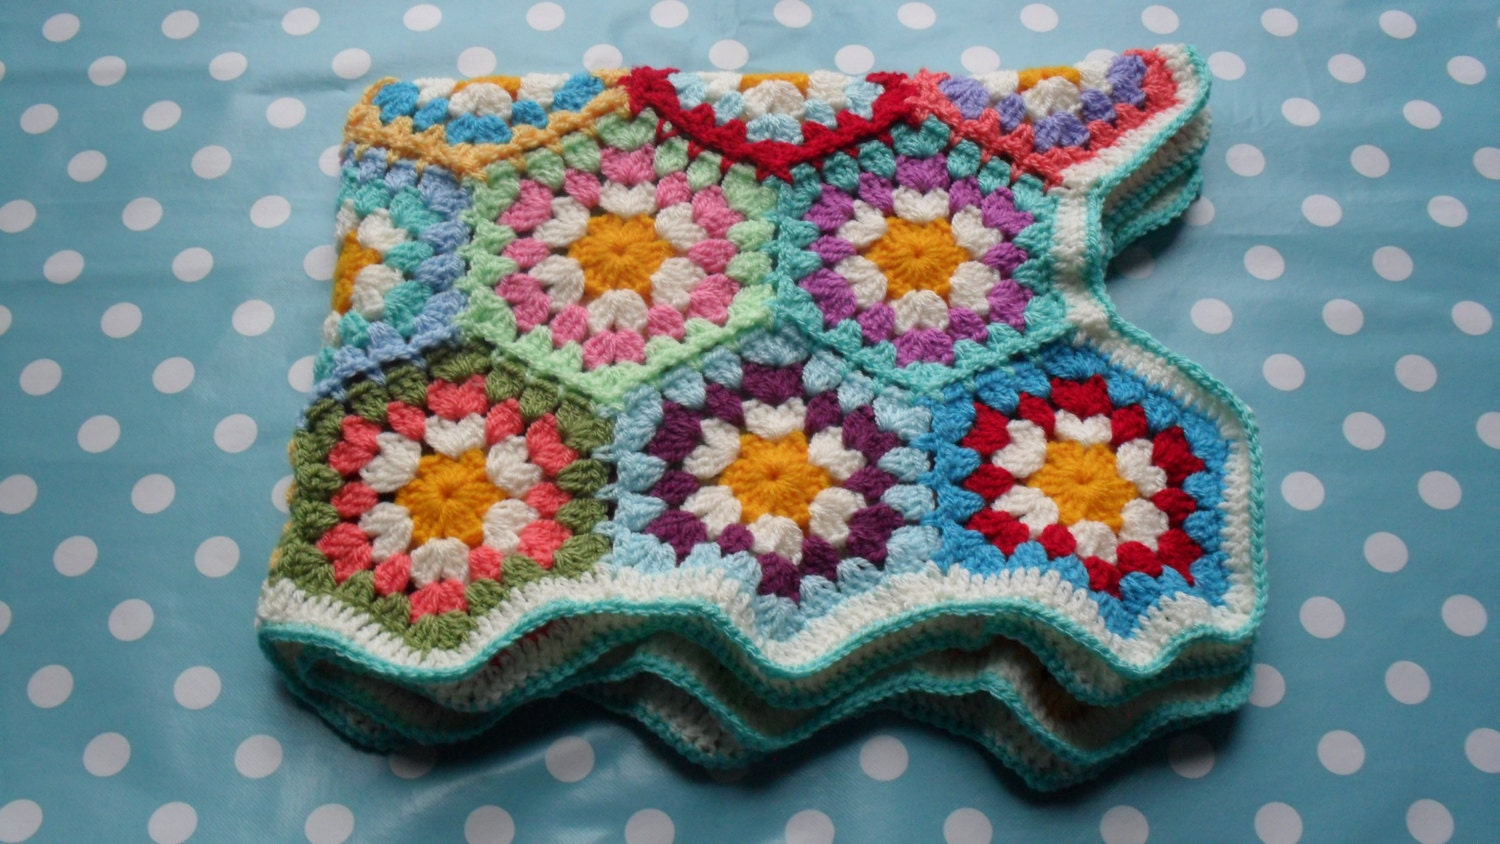 Crochet Daisy Baby Blanket Pattern : Daisy Baby Blanket Crochet Hexagon Baby by AddiesKnittedGifts